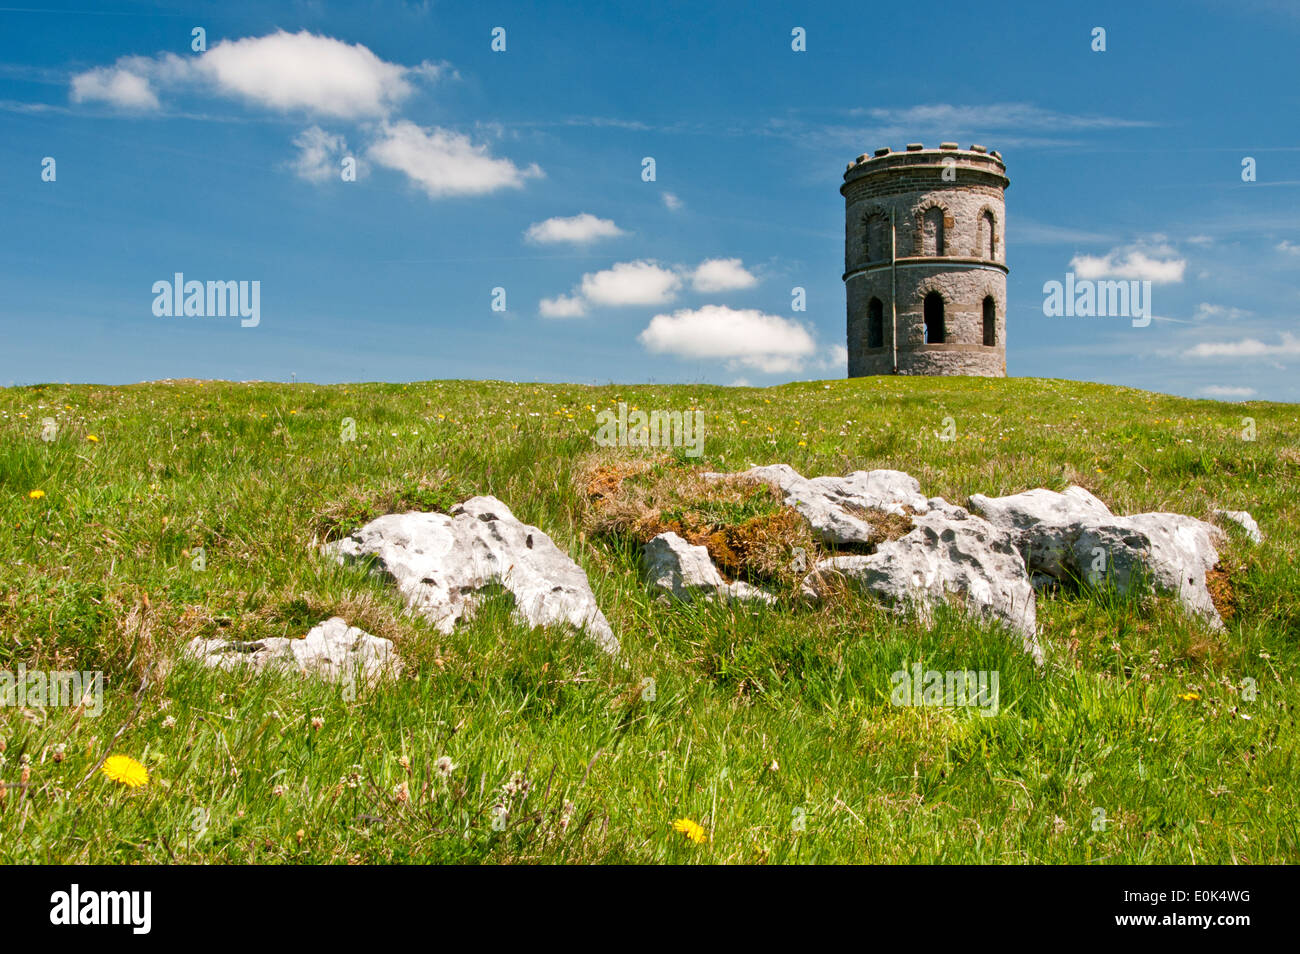 Solomons Temple, Grinlow Hill, Buxton, Peak District, Derbyshire, England, UK - Stock Image